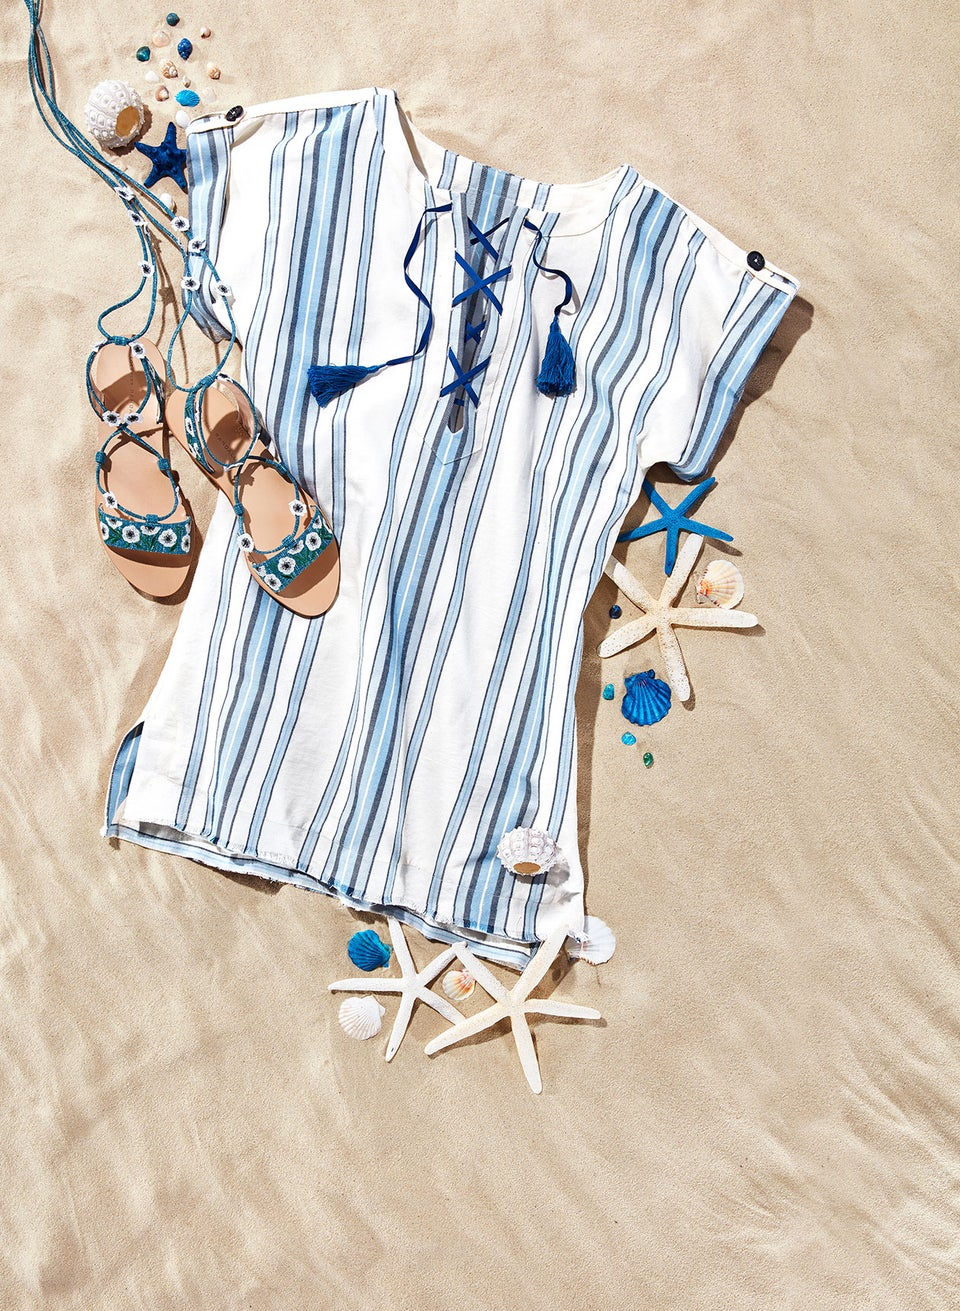 Dynamic Duo! The Tunics and Sandals You Need for Summer '17